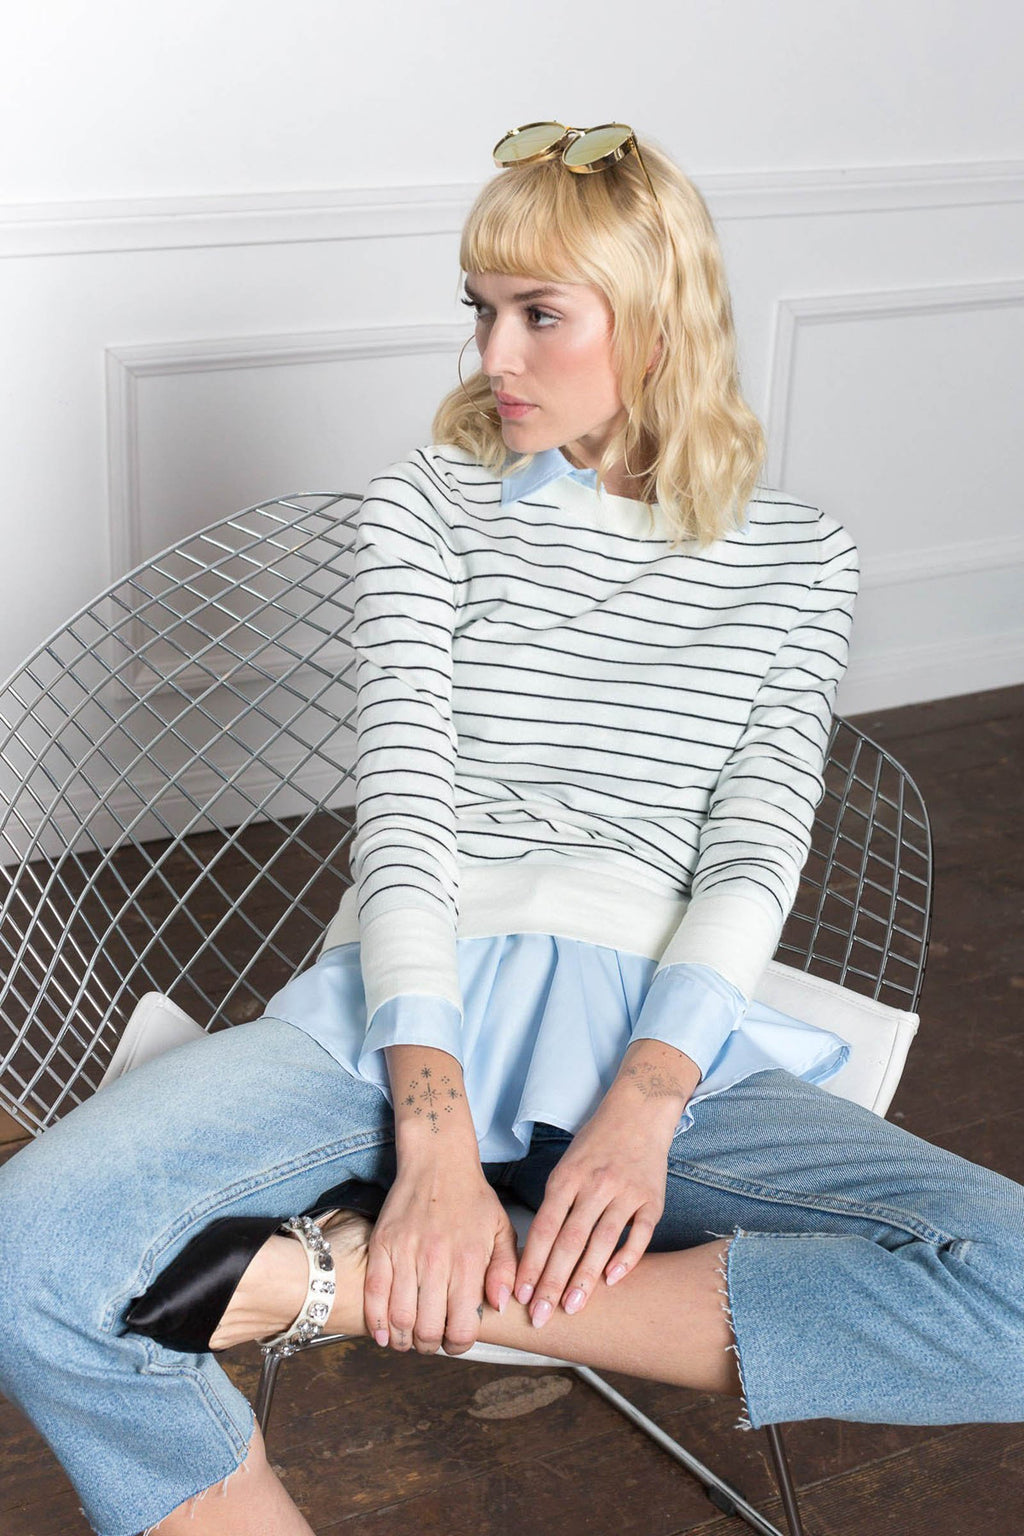 Hampton Ivory Sweater in Knitwear by J.ING - an L.A based women's fashion line